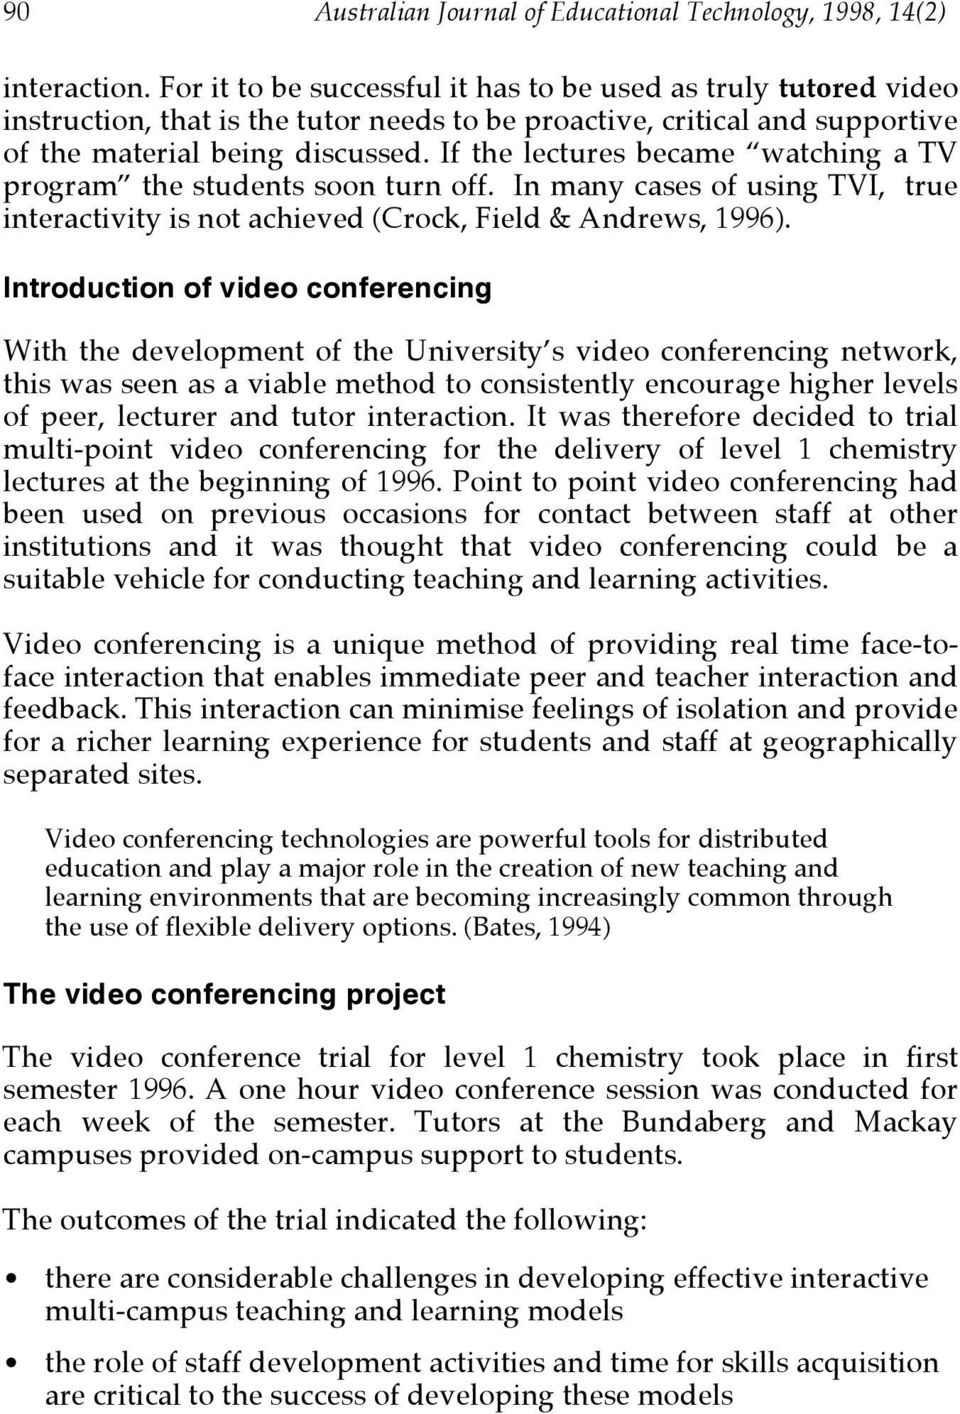 If the lectures became watching a TV program the students soon turn off. In many cases of using TVI, true interactivity is not achieved (Crock, Field & Andrews, 1996).